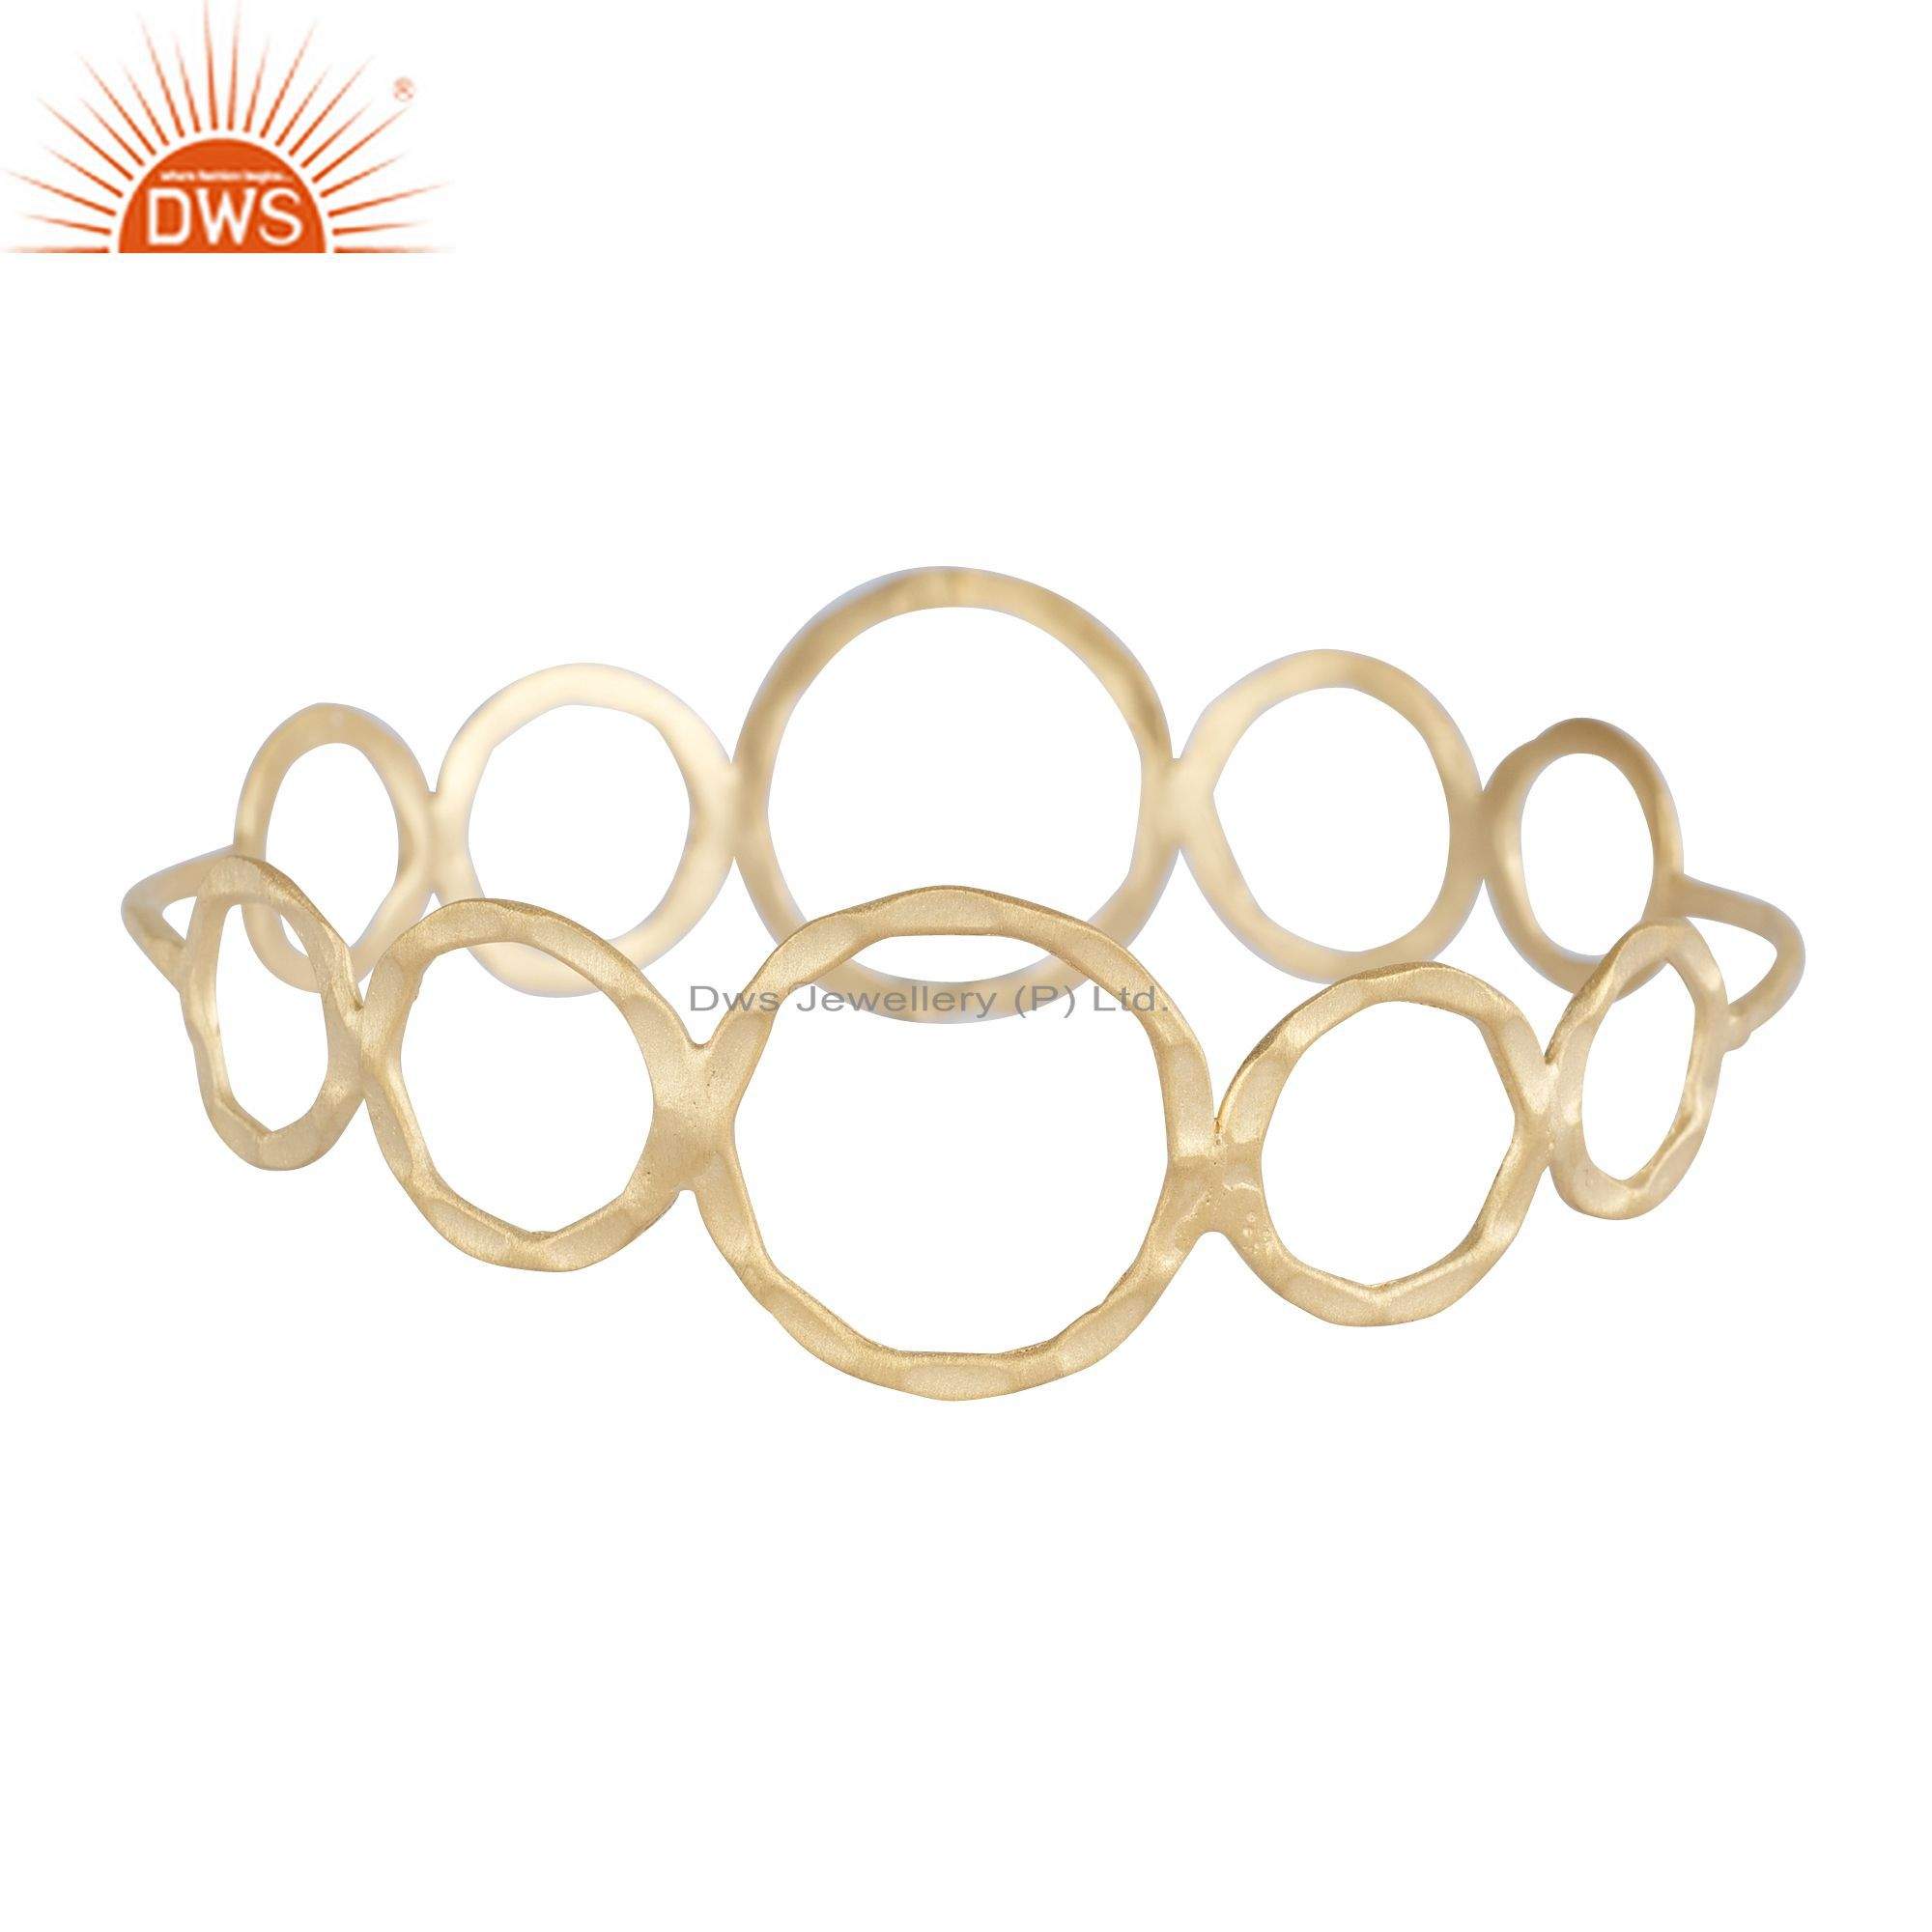 22K Yellow Gold Plated Sterling Silver Hammered Open Circle Bangle Bracelet